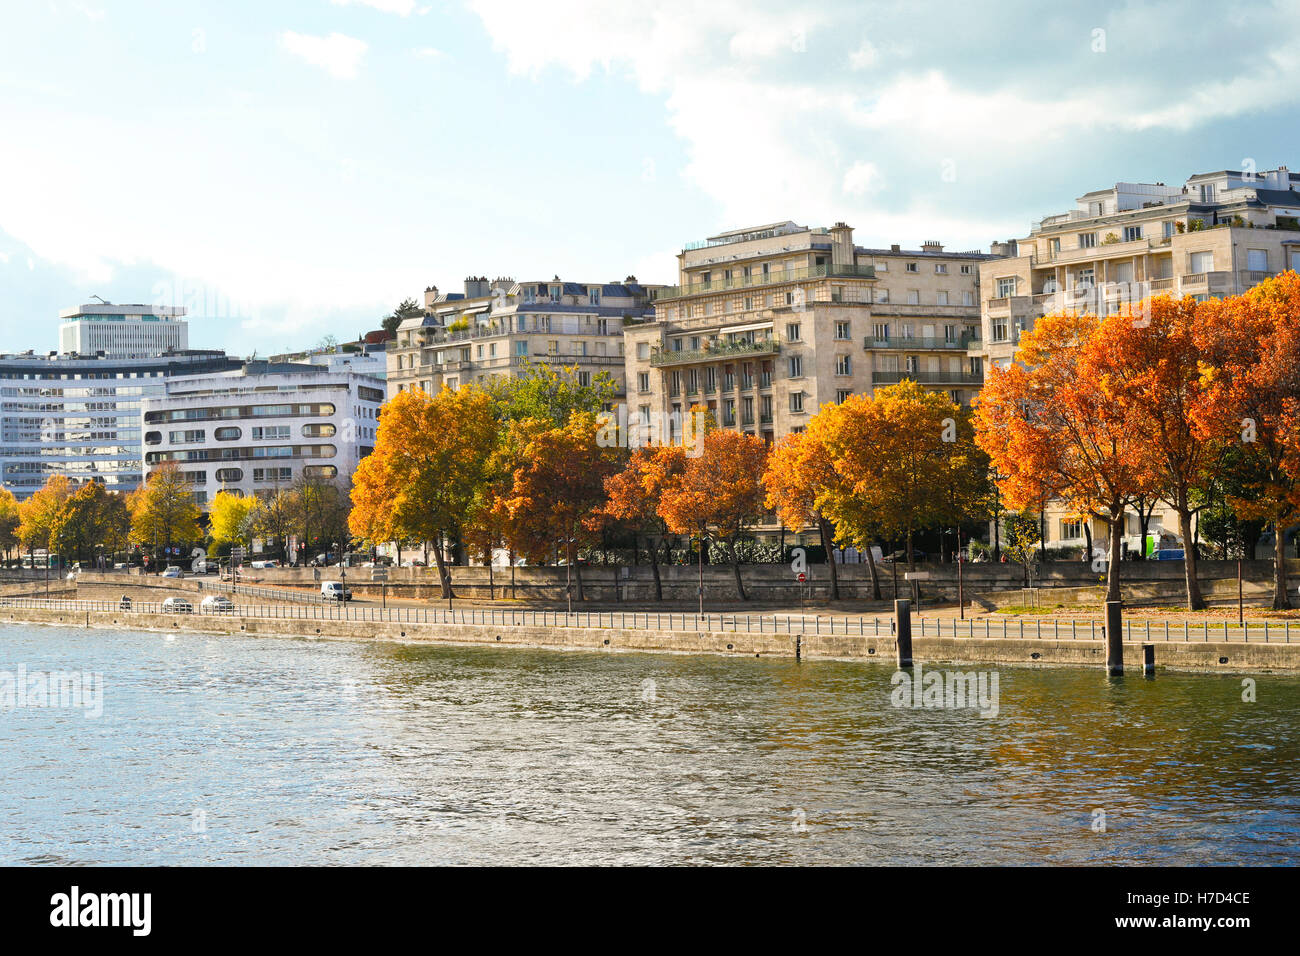 France. Paris.The  river Seine in Fall/Autumn. - Stock Image